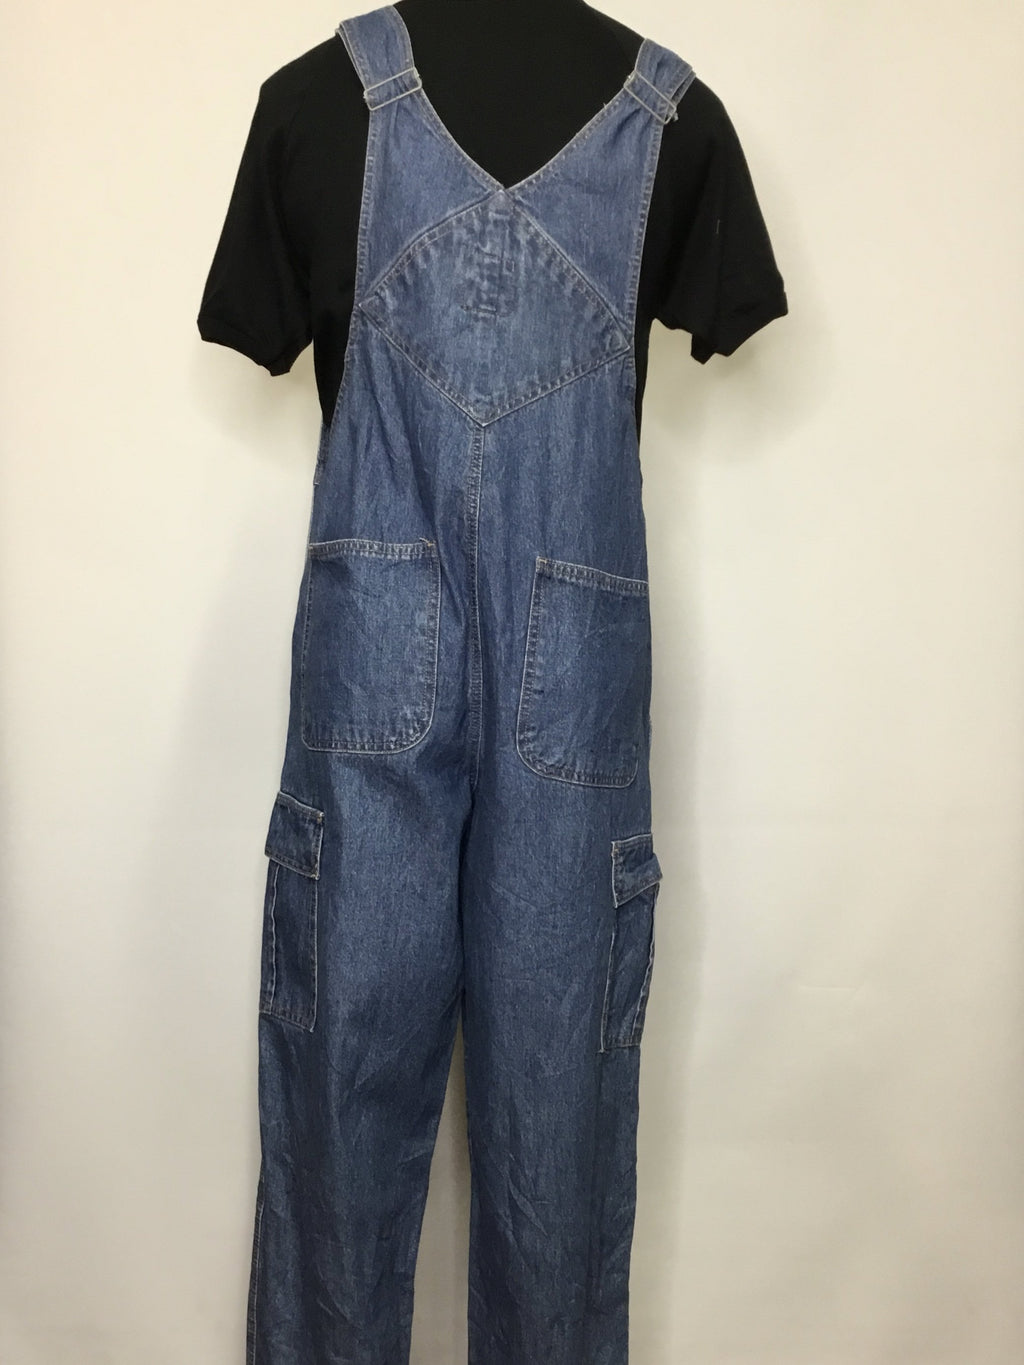 Faded Glory Blue Denim Overalls